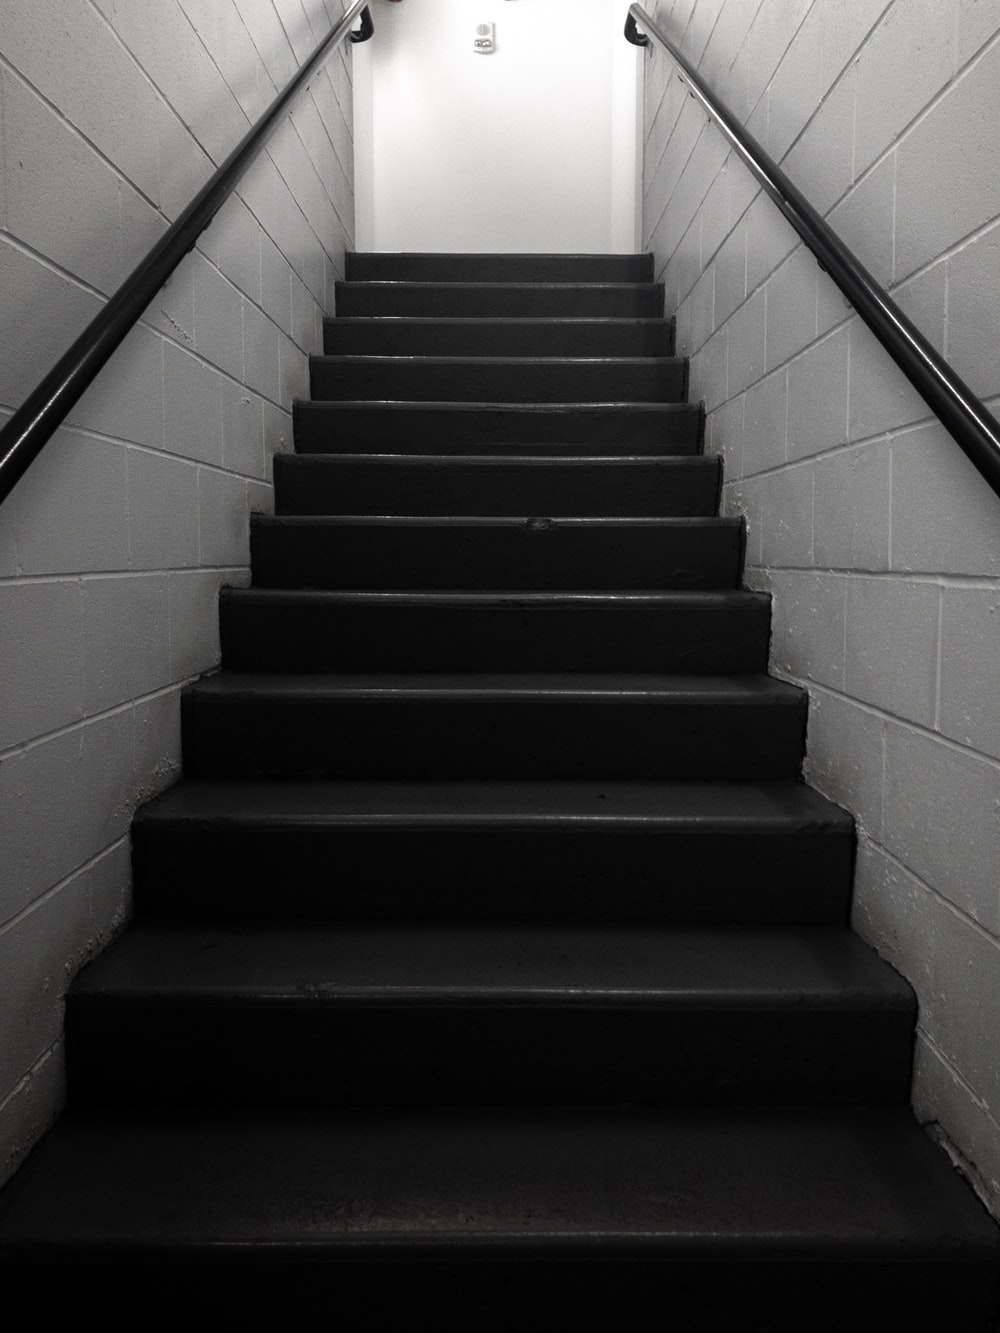 Staircases Pictures Download Free Images On Unsplash